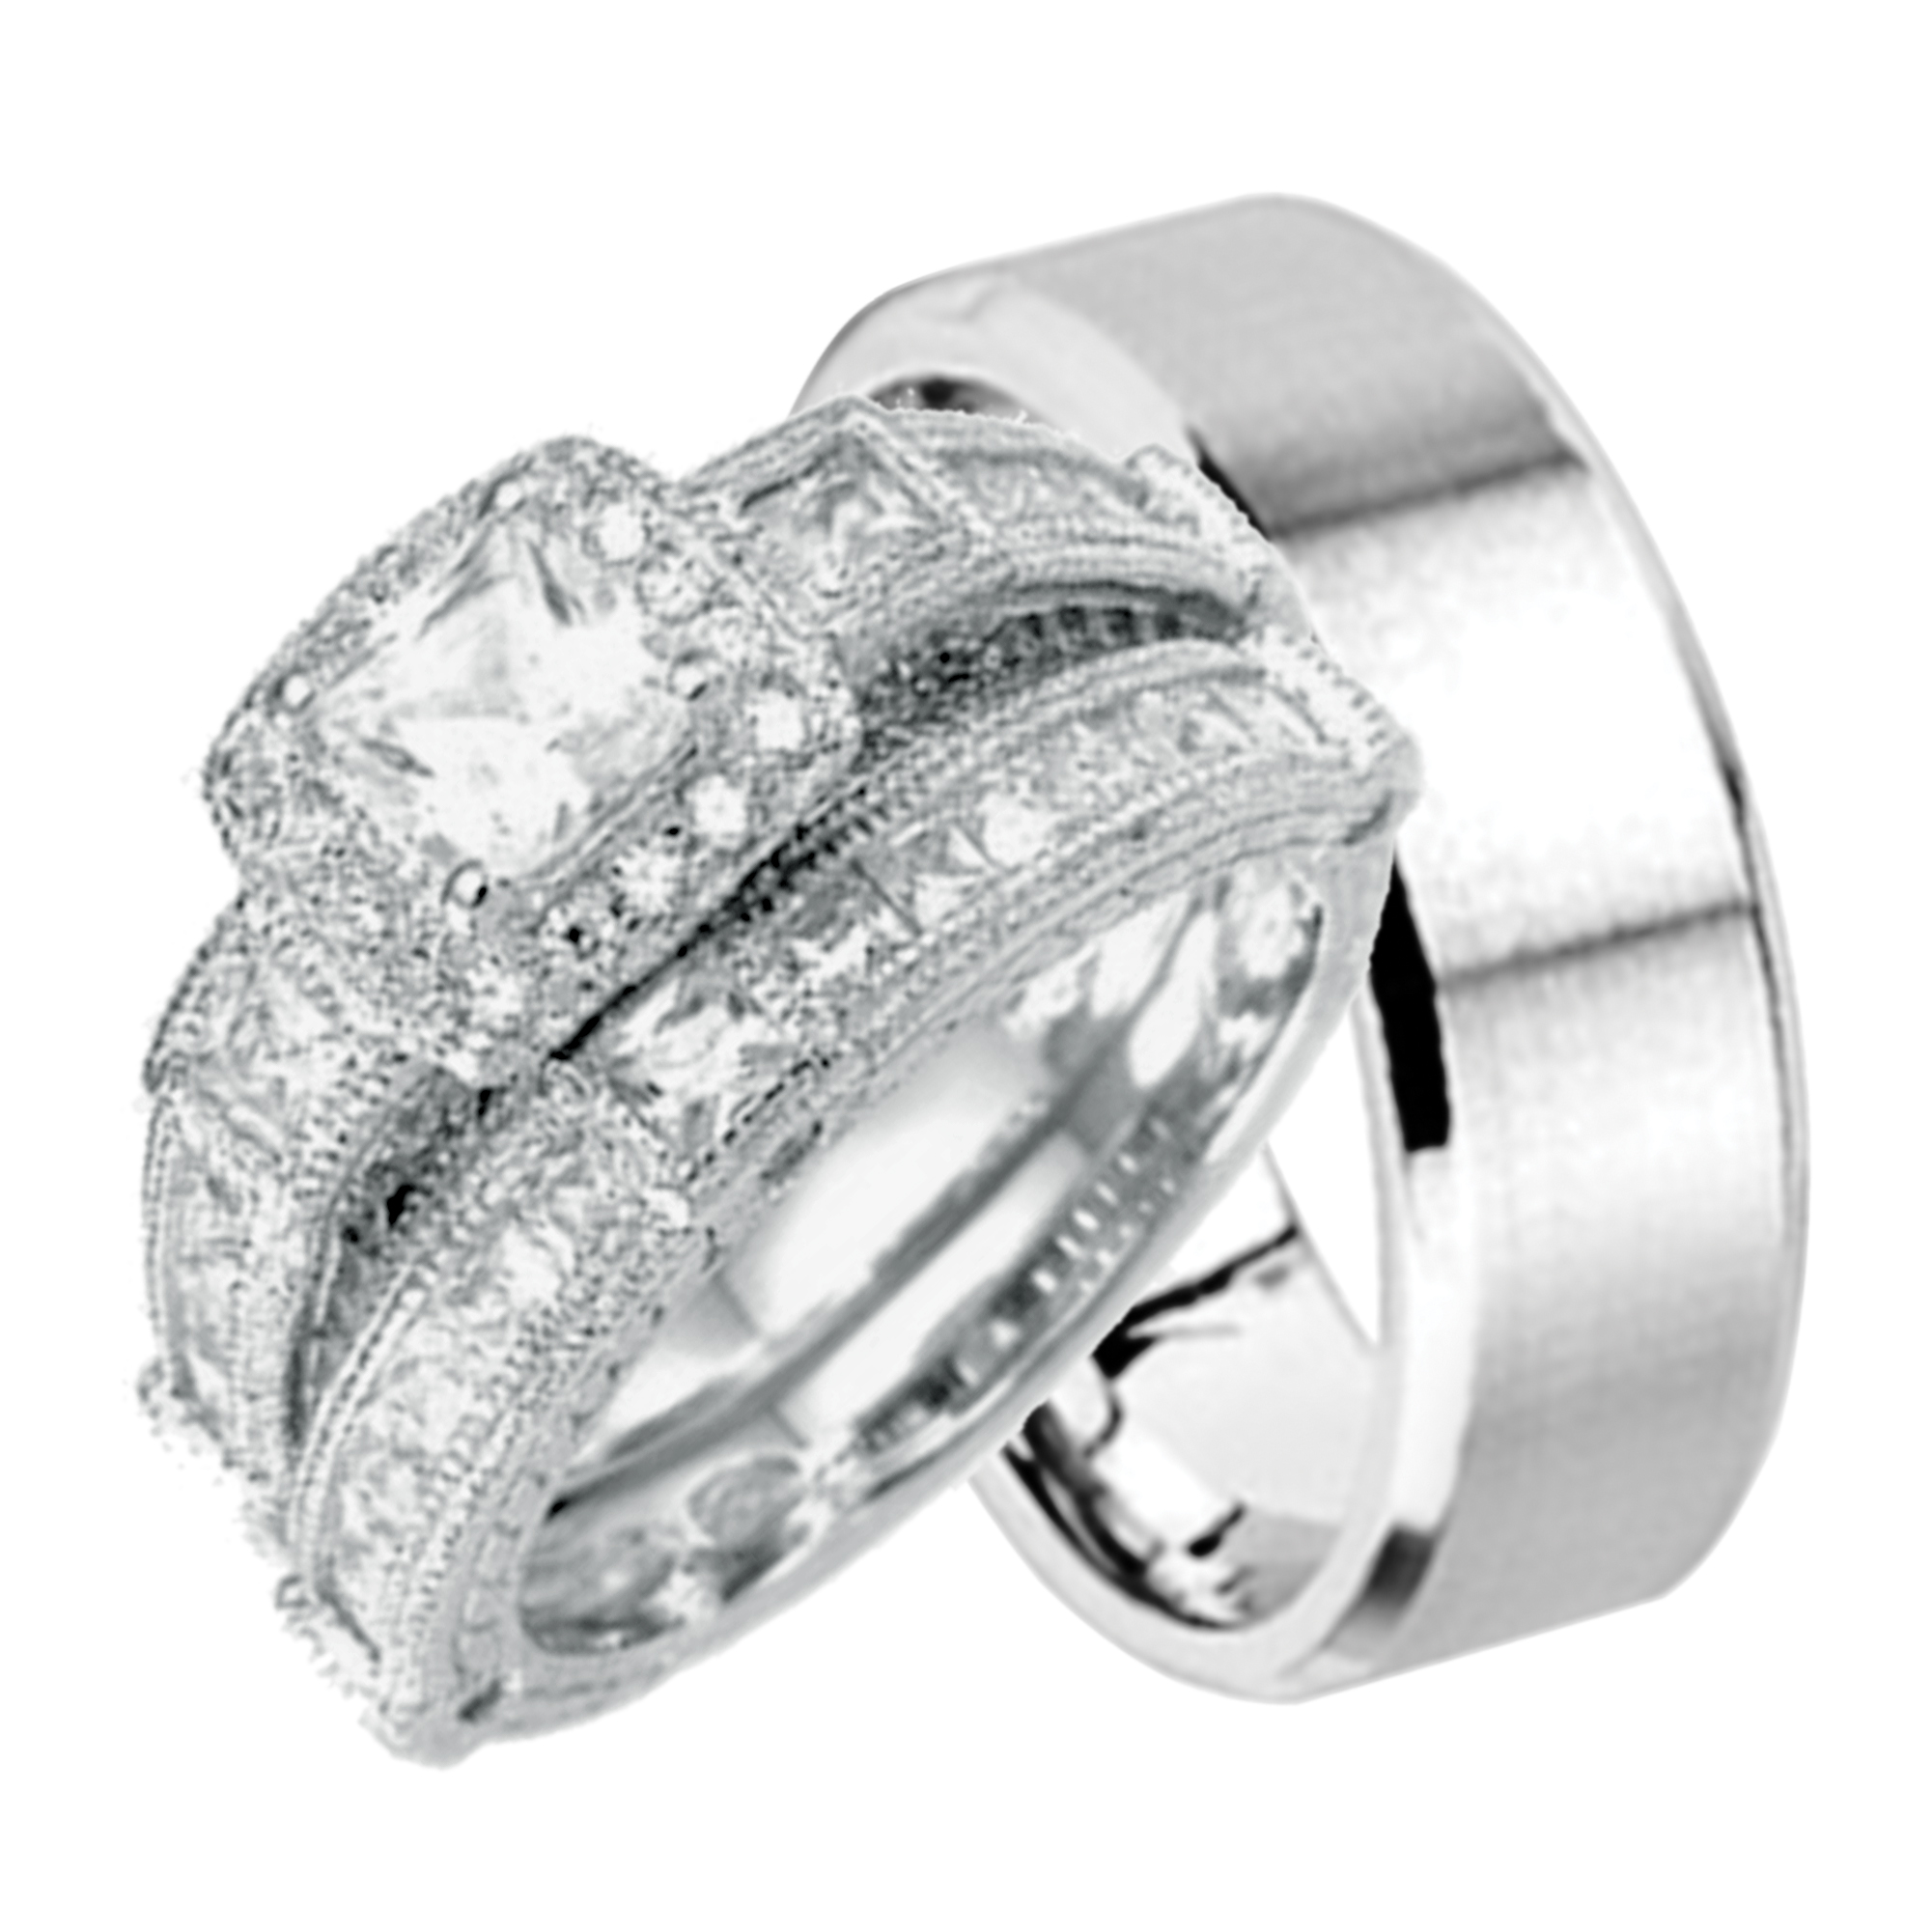 His And Hers Wedding Ring Set Matching Wedding Bands For Him And Her (6/